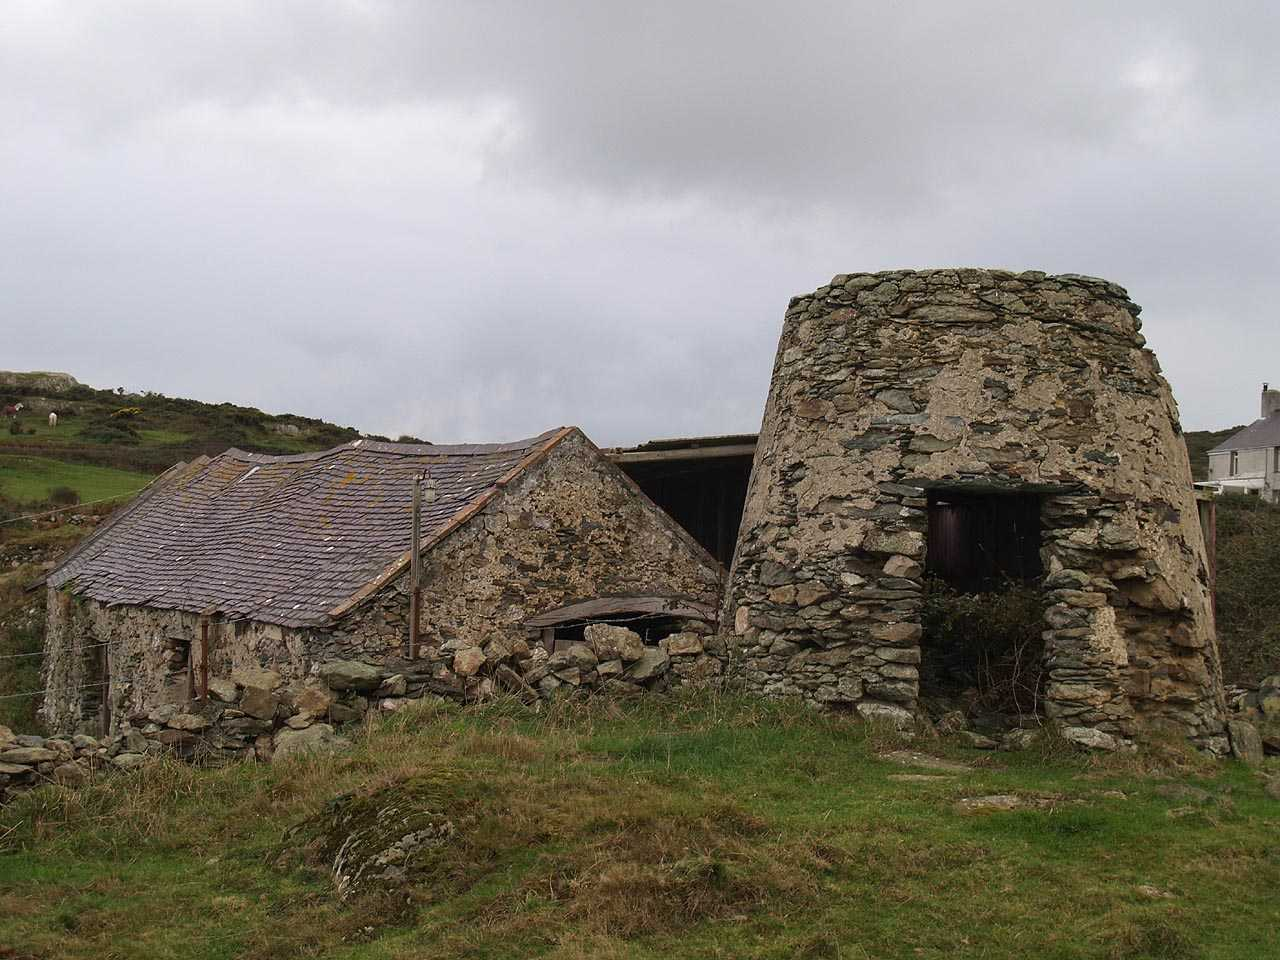 Bull Bay, Melin Y Pant Windmill and old Barn